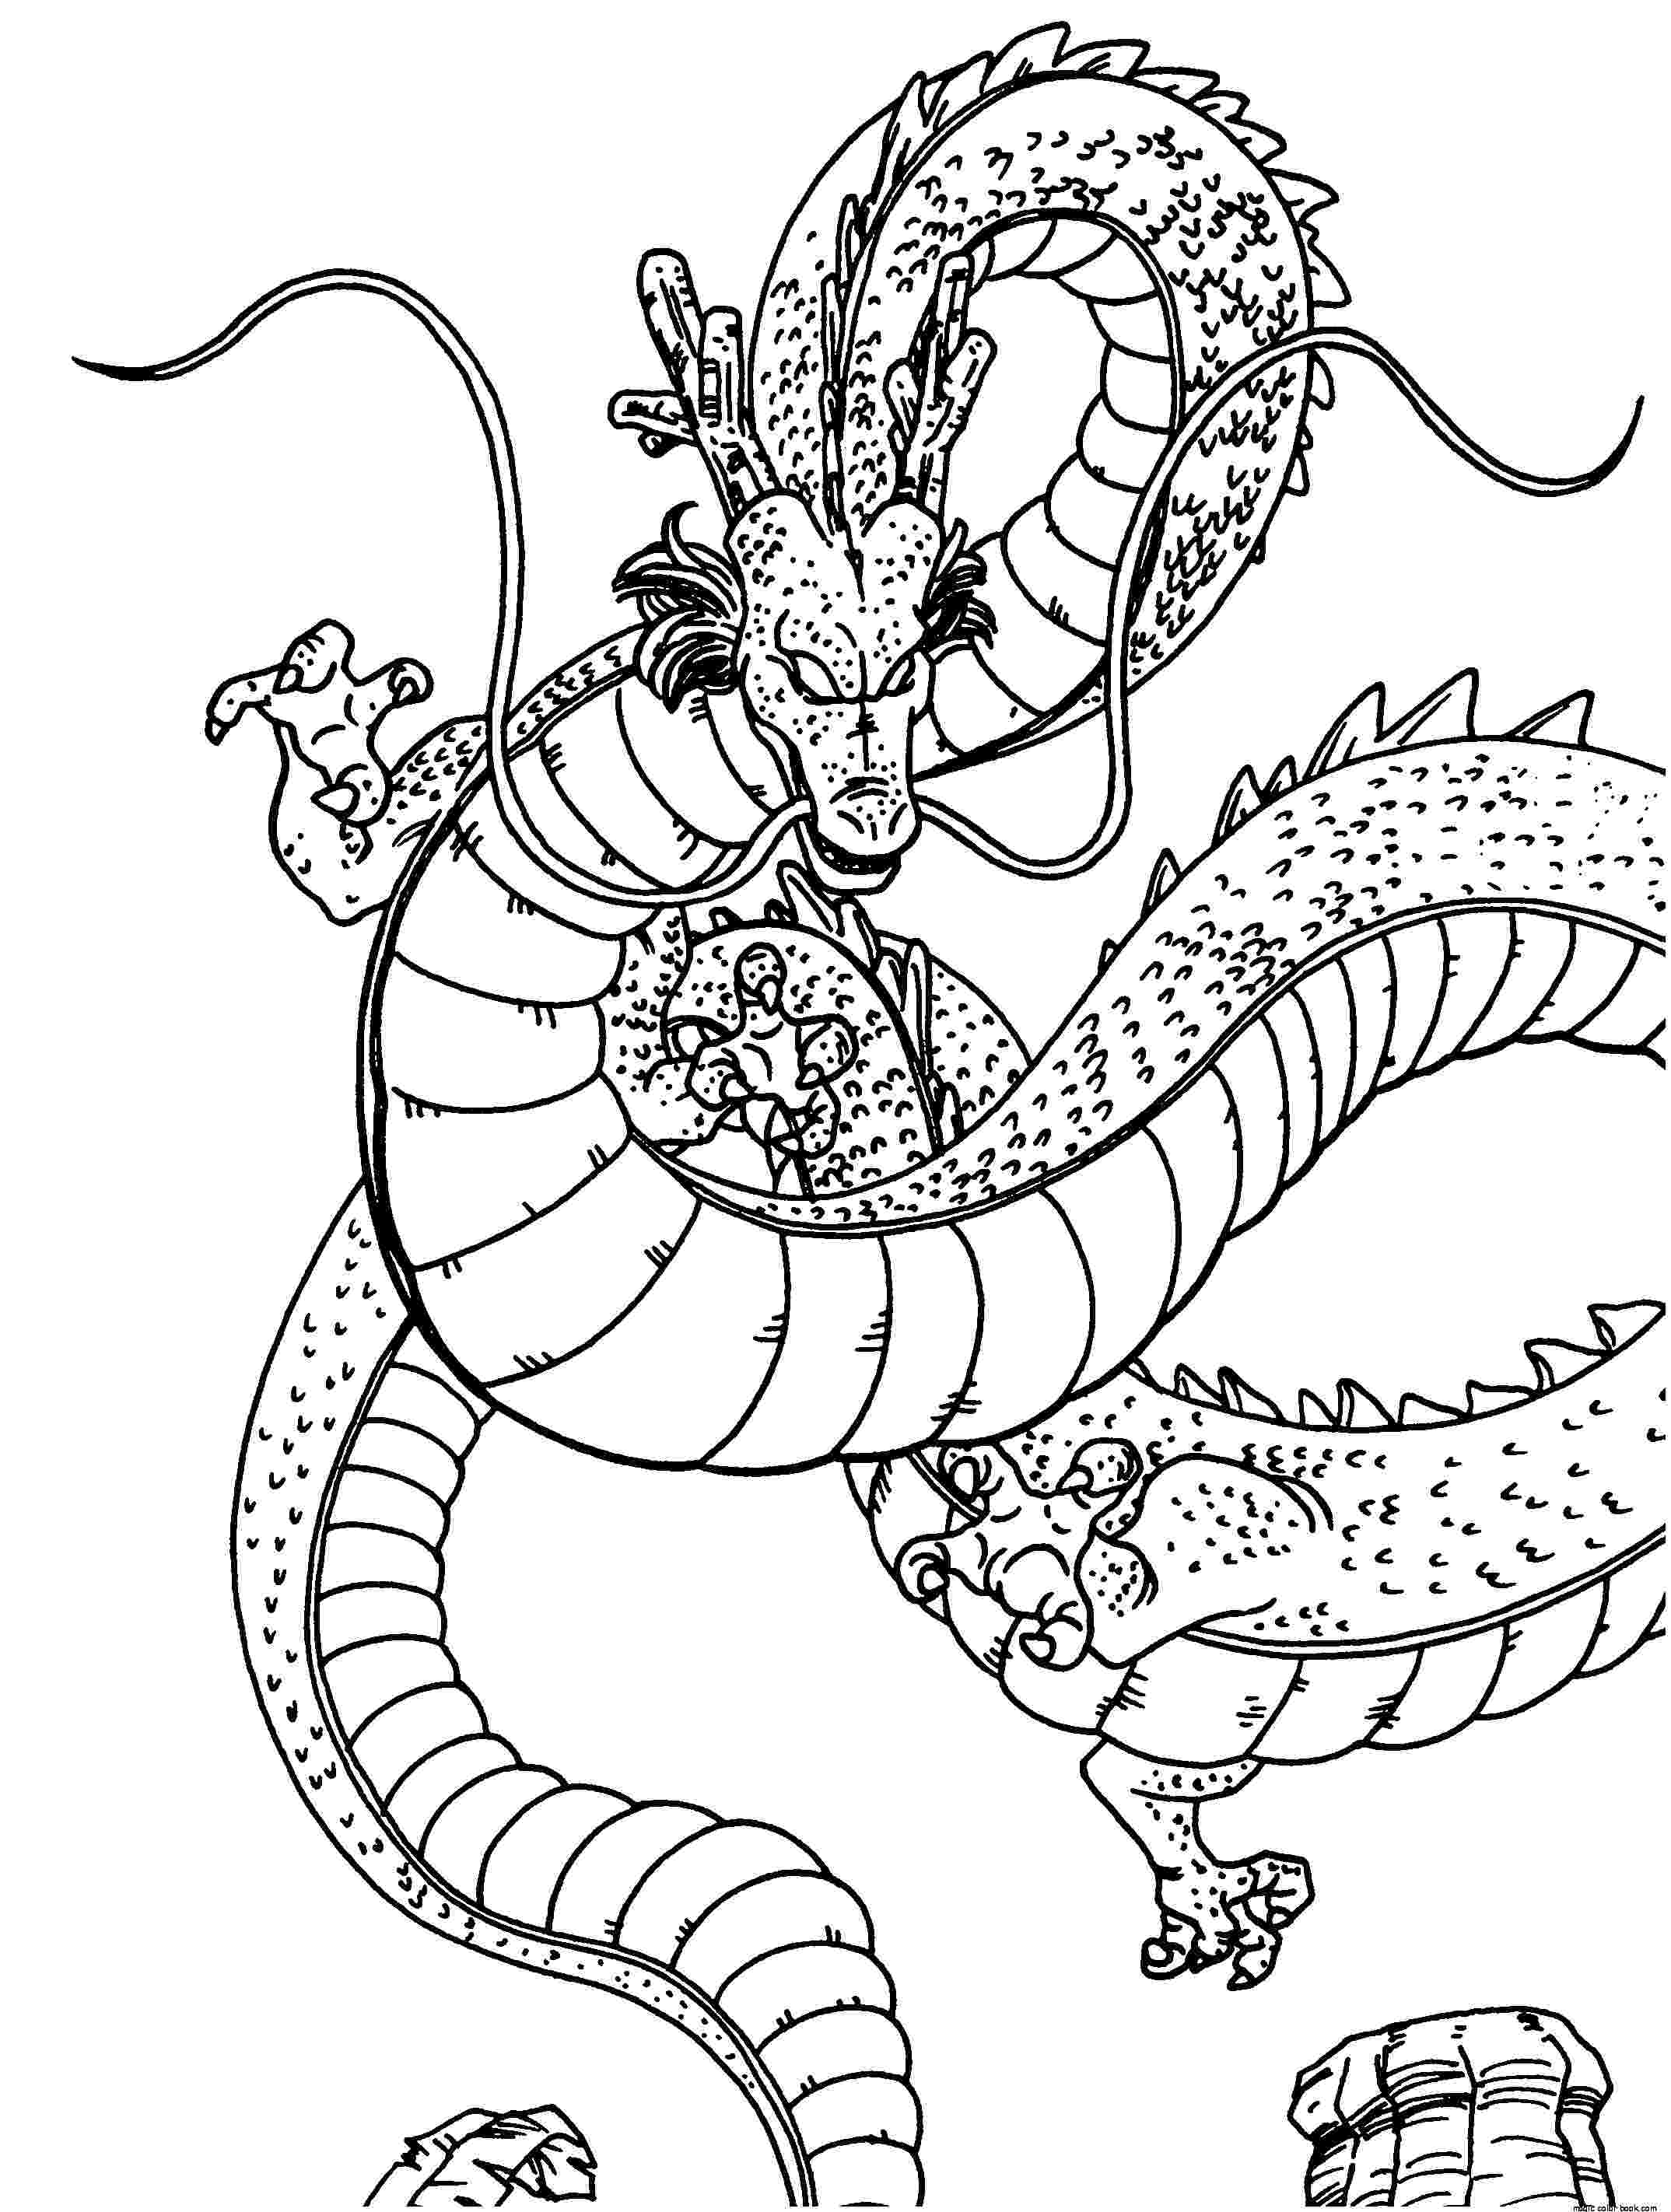 dragon ball coloring games dragon ball z coloring pages games at getcoloringscom coloring games ball dragon